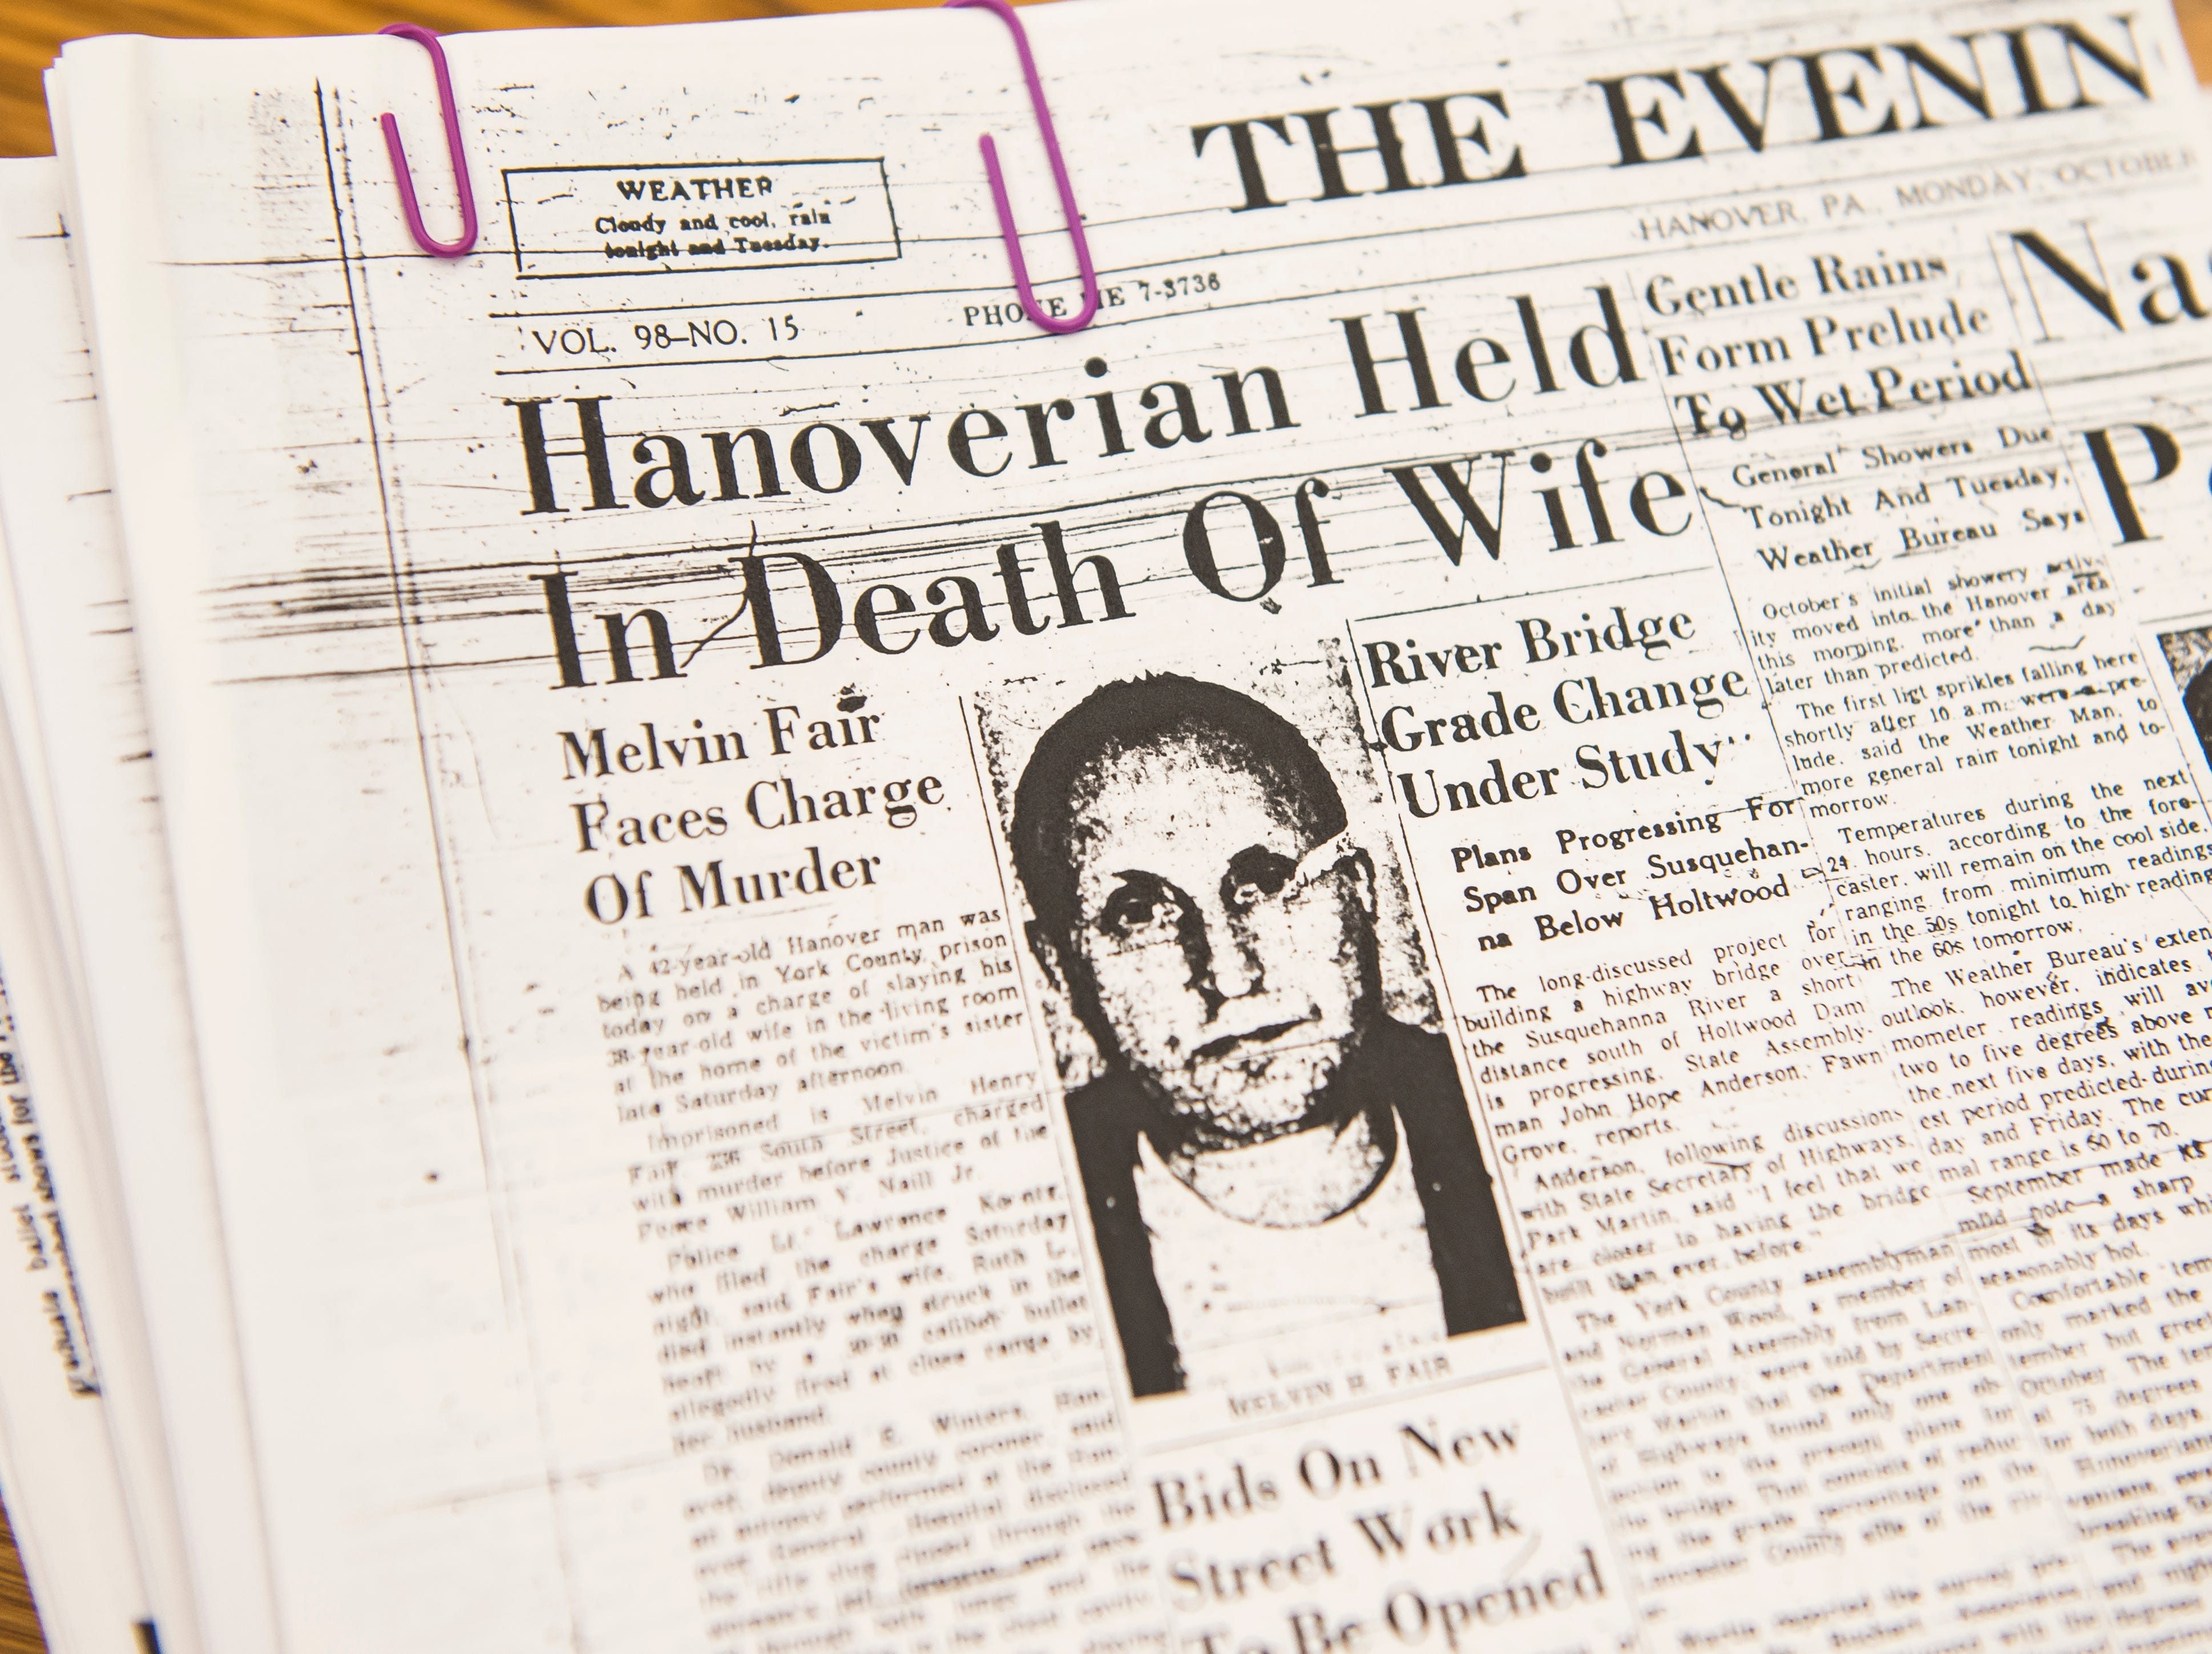 A newspaper clipping from 1961 details the case of Melvin Fair, a 42-year-old Hanover man who was found guilty of second-degree murder of his wife, Ruth Fair.